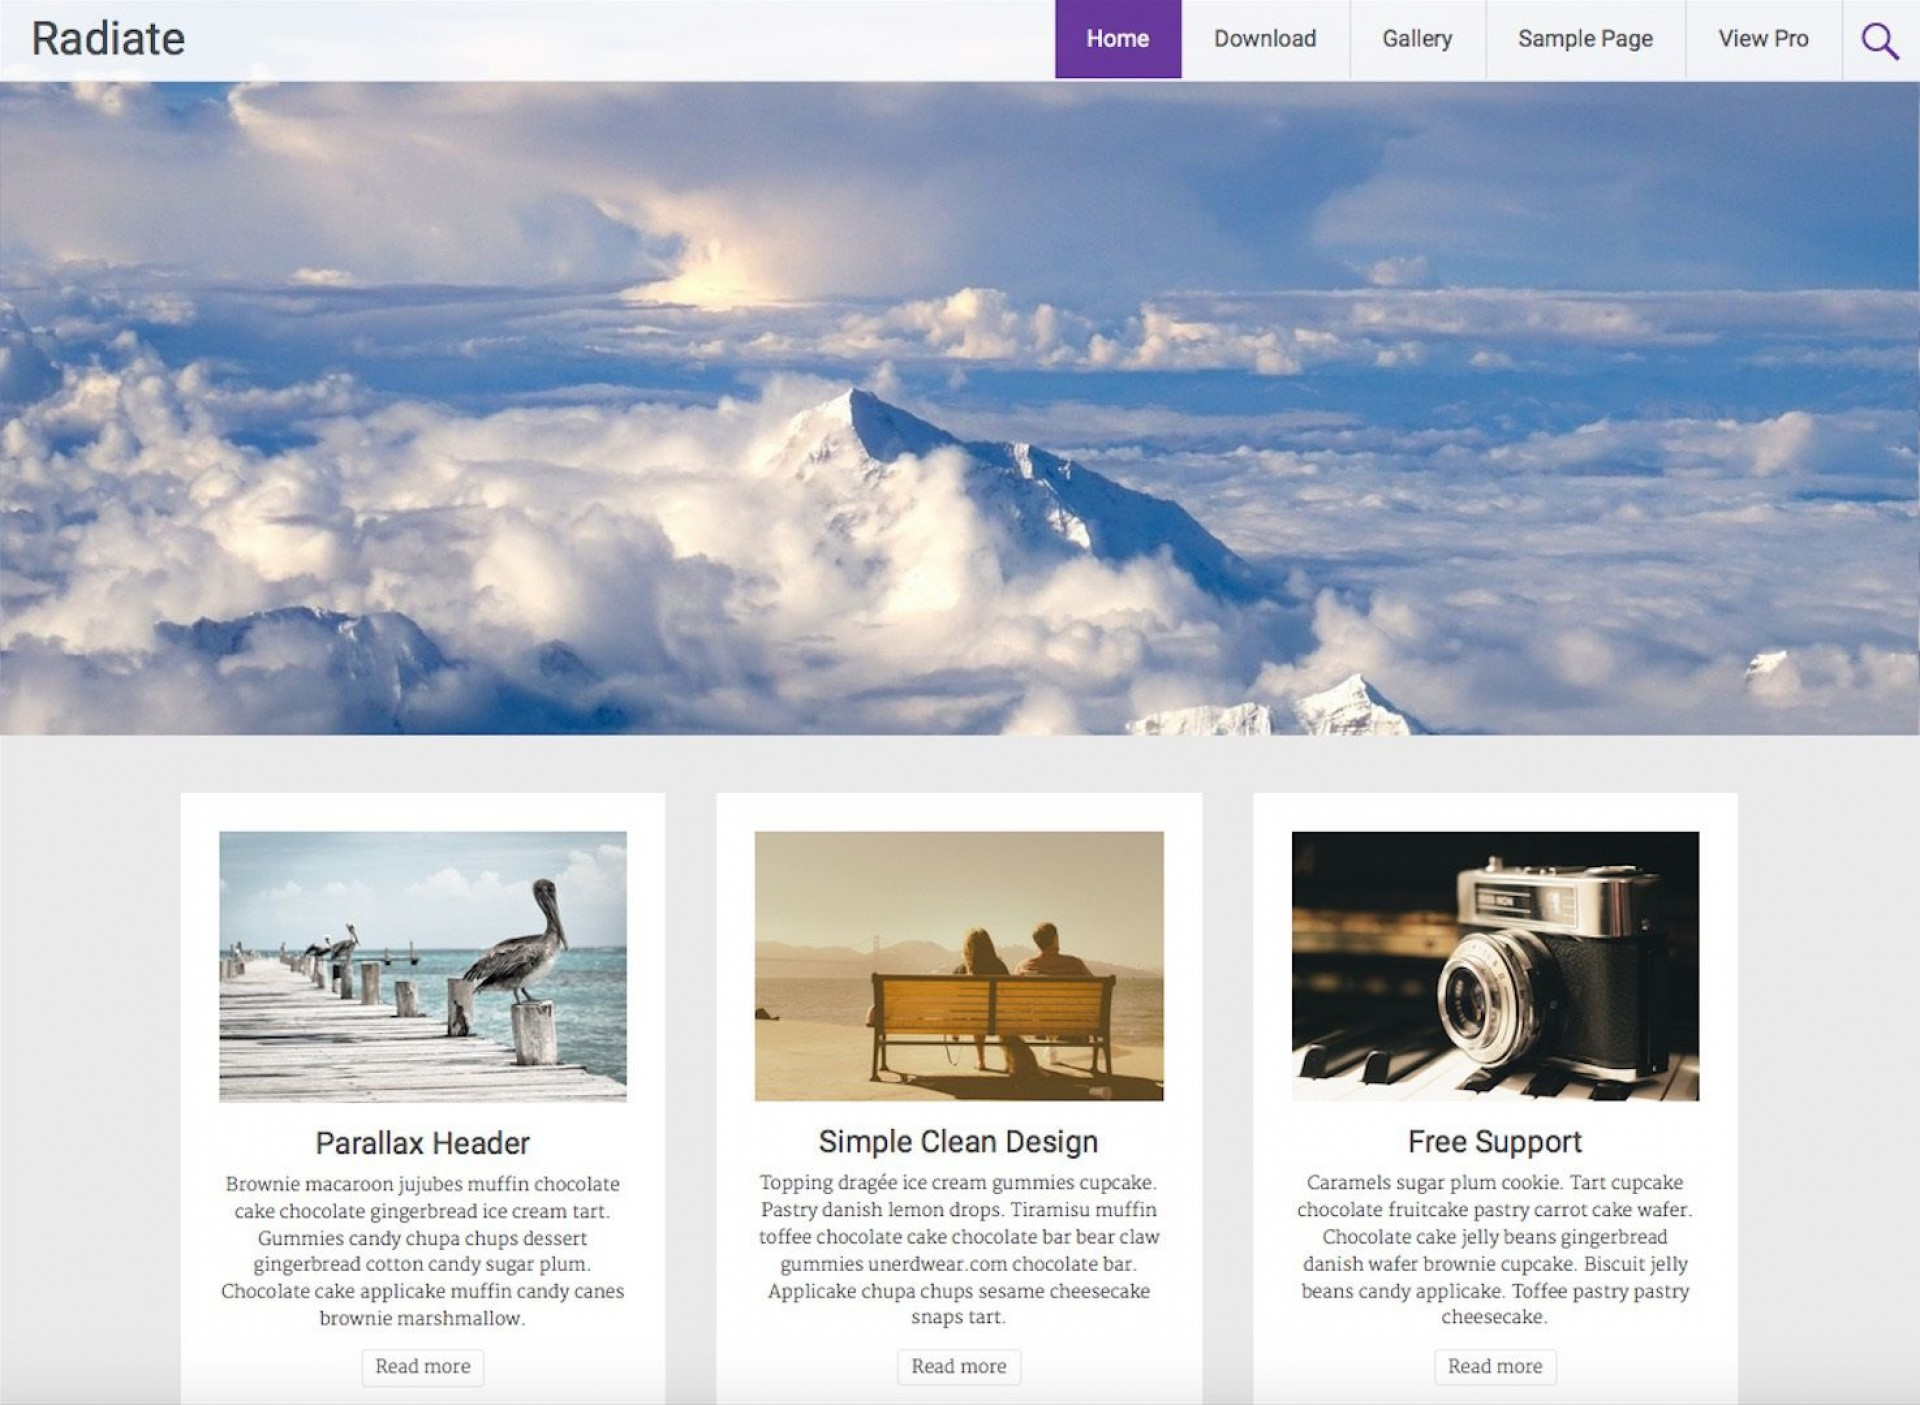 006 Top Best Free Responsive Blogger Template 2015 Sample 1920